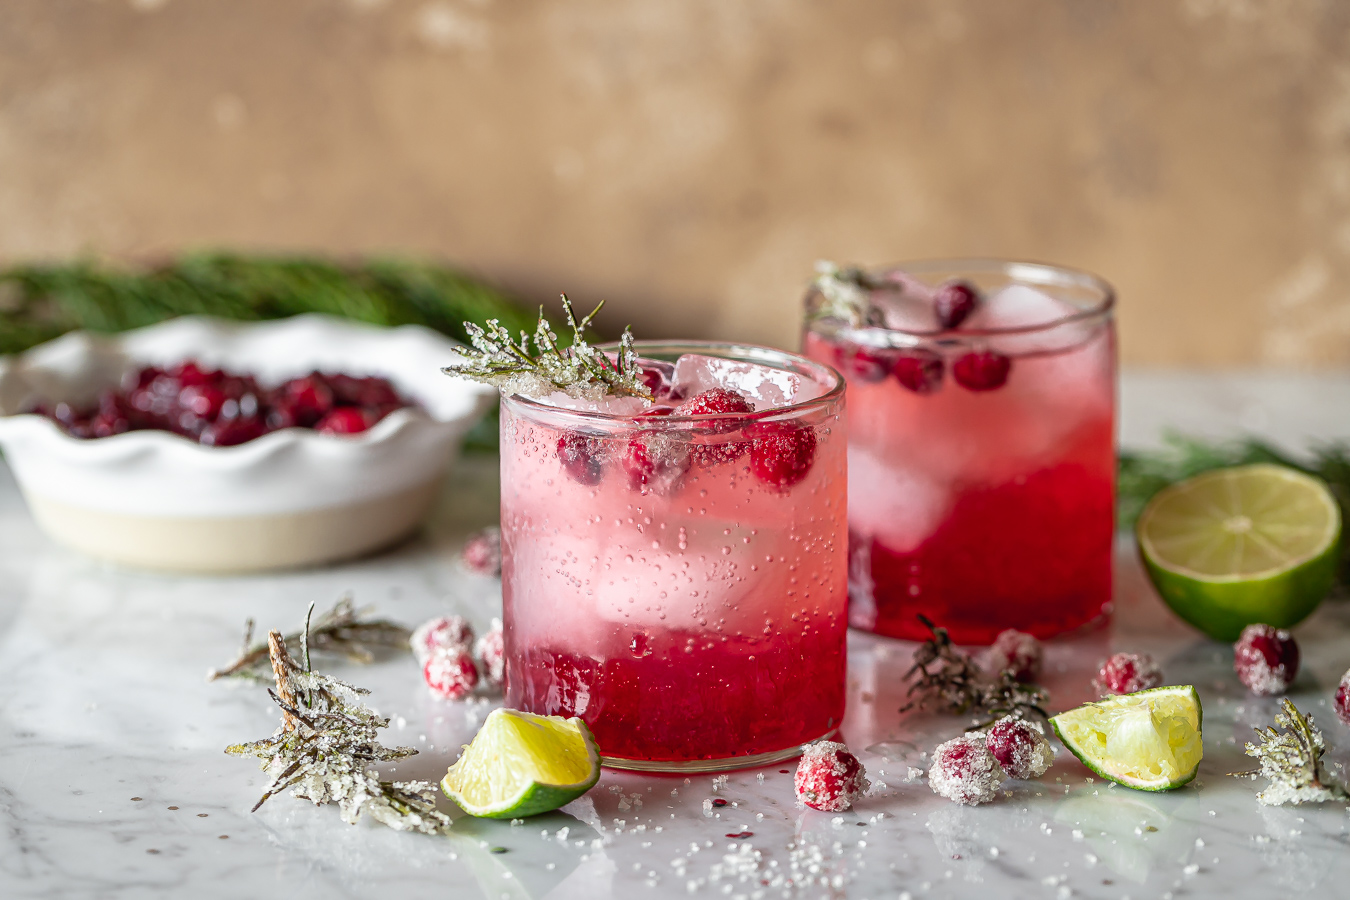 side view of two glasses of cranberry smash holiday cocktails made with leftover cranberry sauce and gin with lime wedges and rosemary on the side